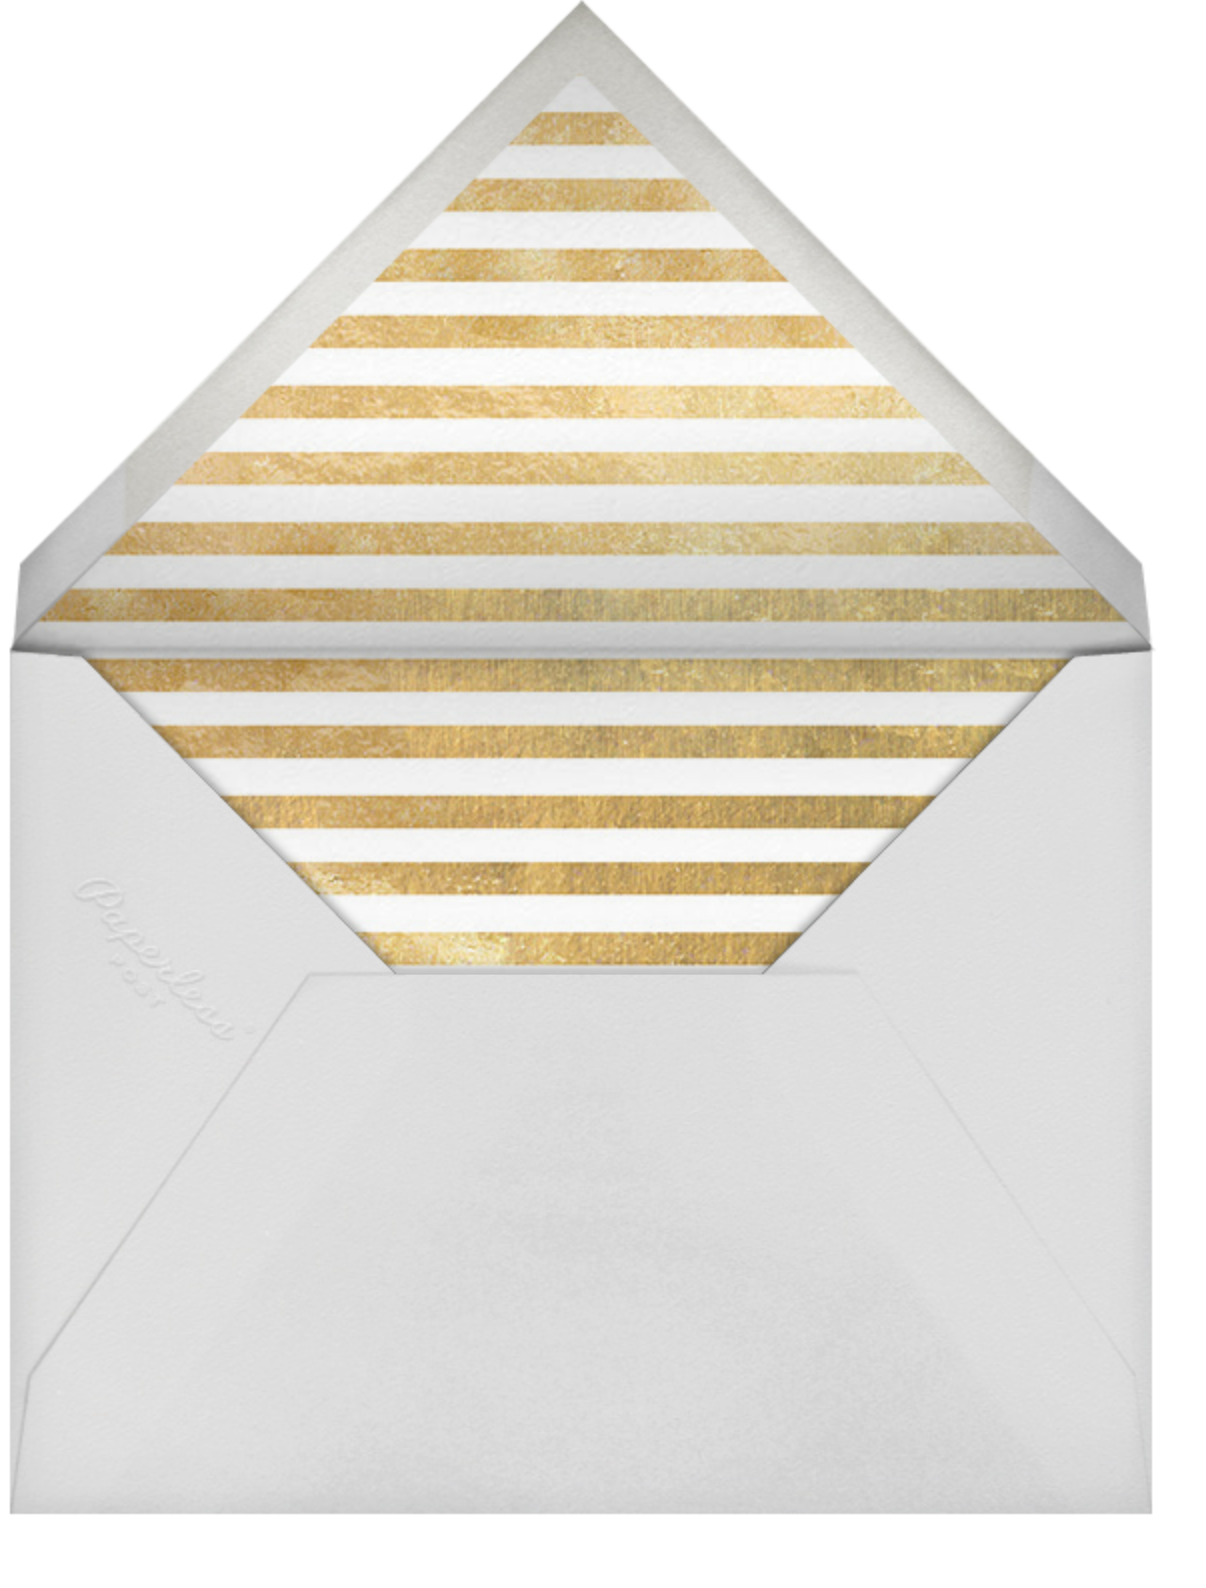 Beauty & Light - kate spade new york - Hanukkah - envelope back